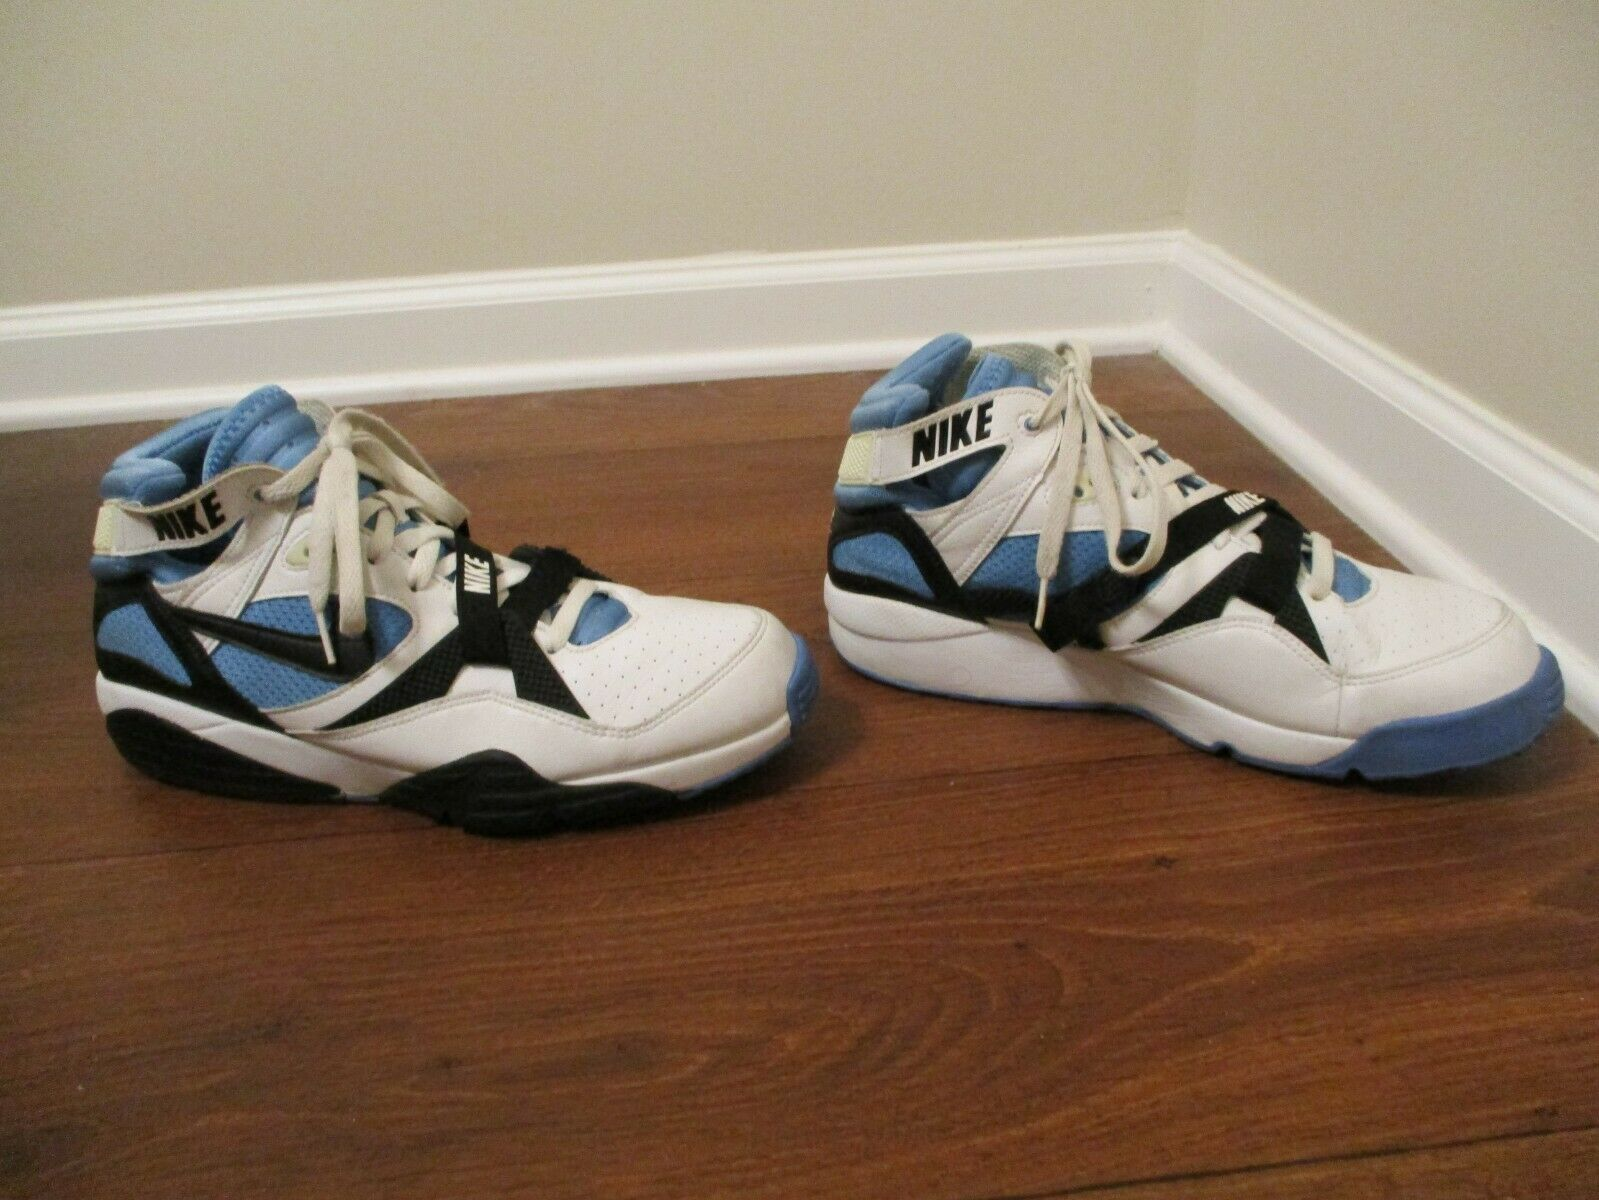 cheaper a6f70 60d7d Classic 2005 Used Worn Size 12 Nike Air Air Air Trainer Max 91 shoes White  Black